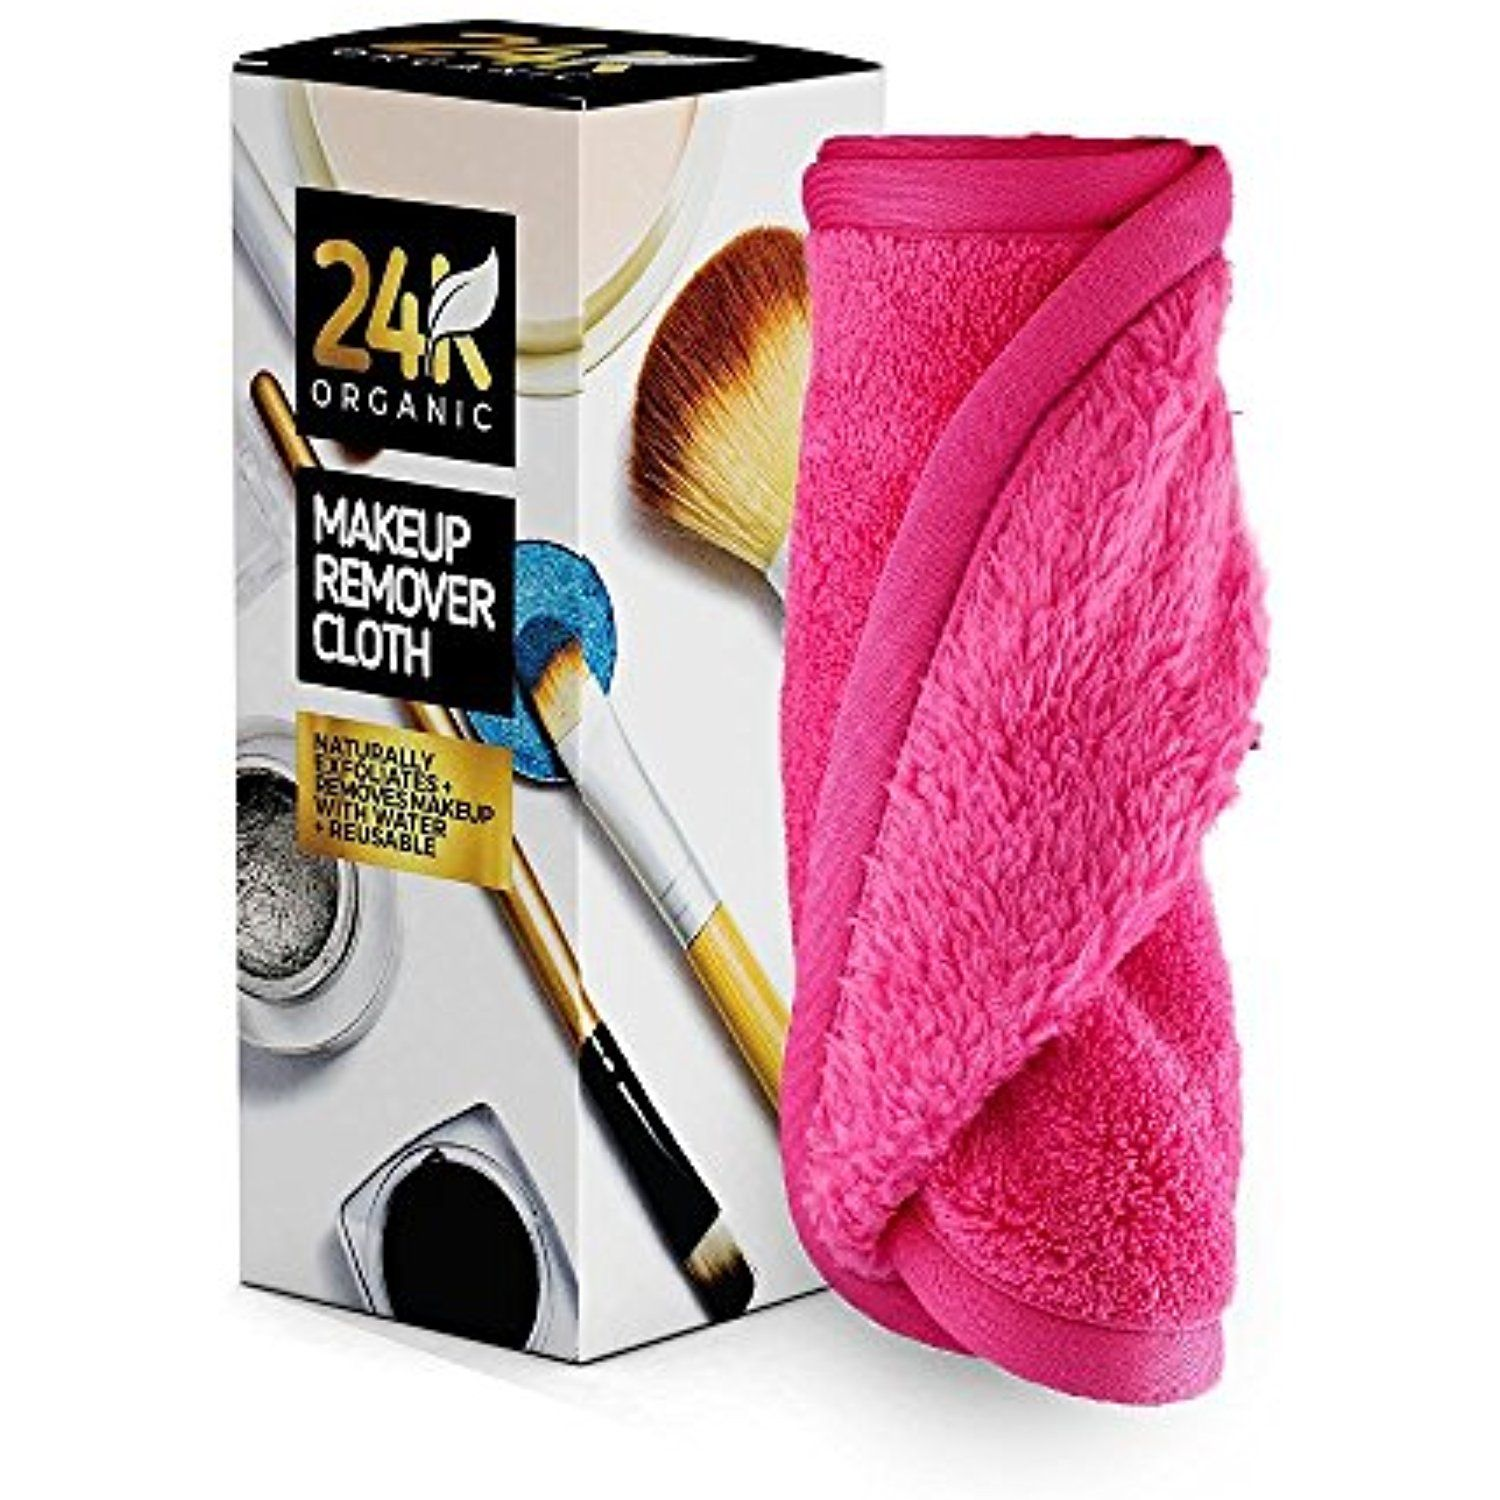 Makeup Remover Cloth by 24K Organic Chemical Free